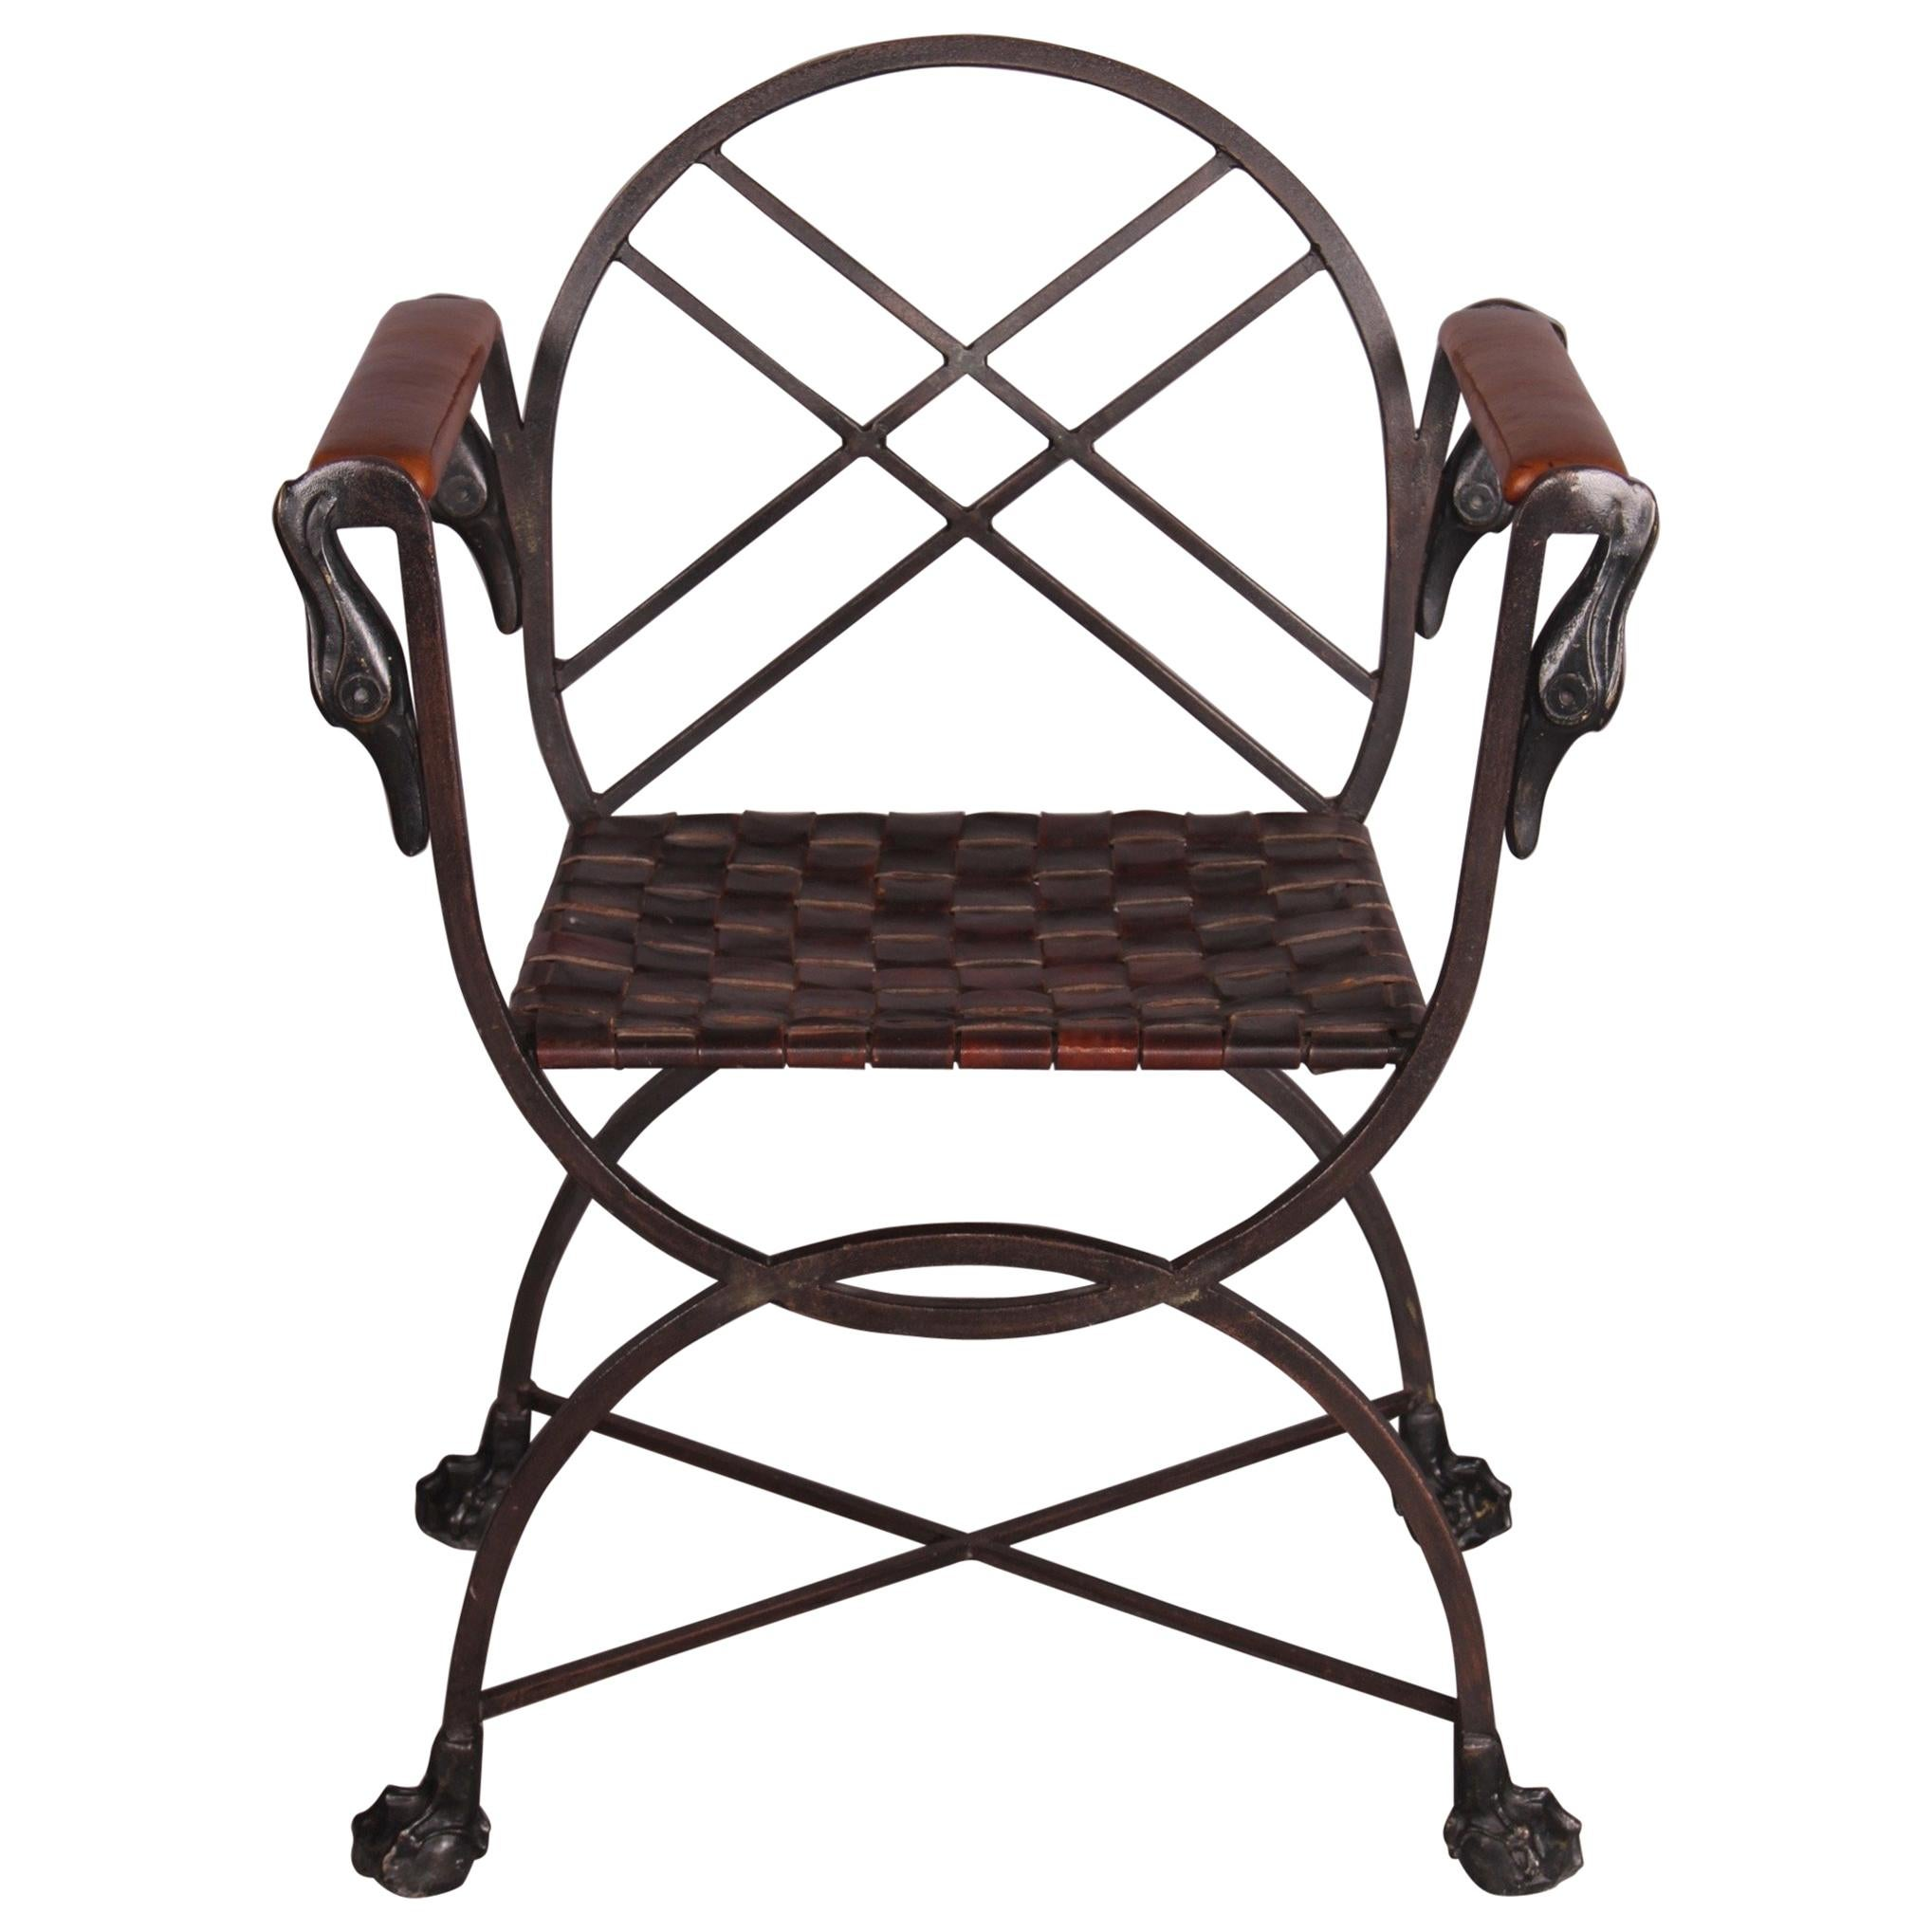 metal armchair chaise lounge chair ikea marcel coard leather and for sale at 1stdibs